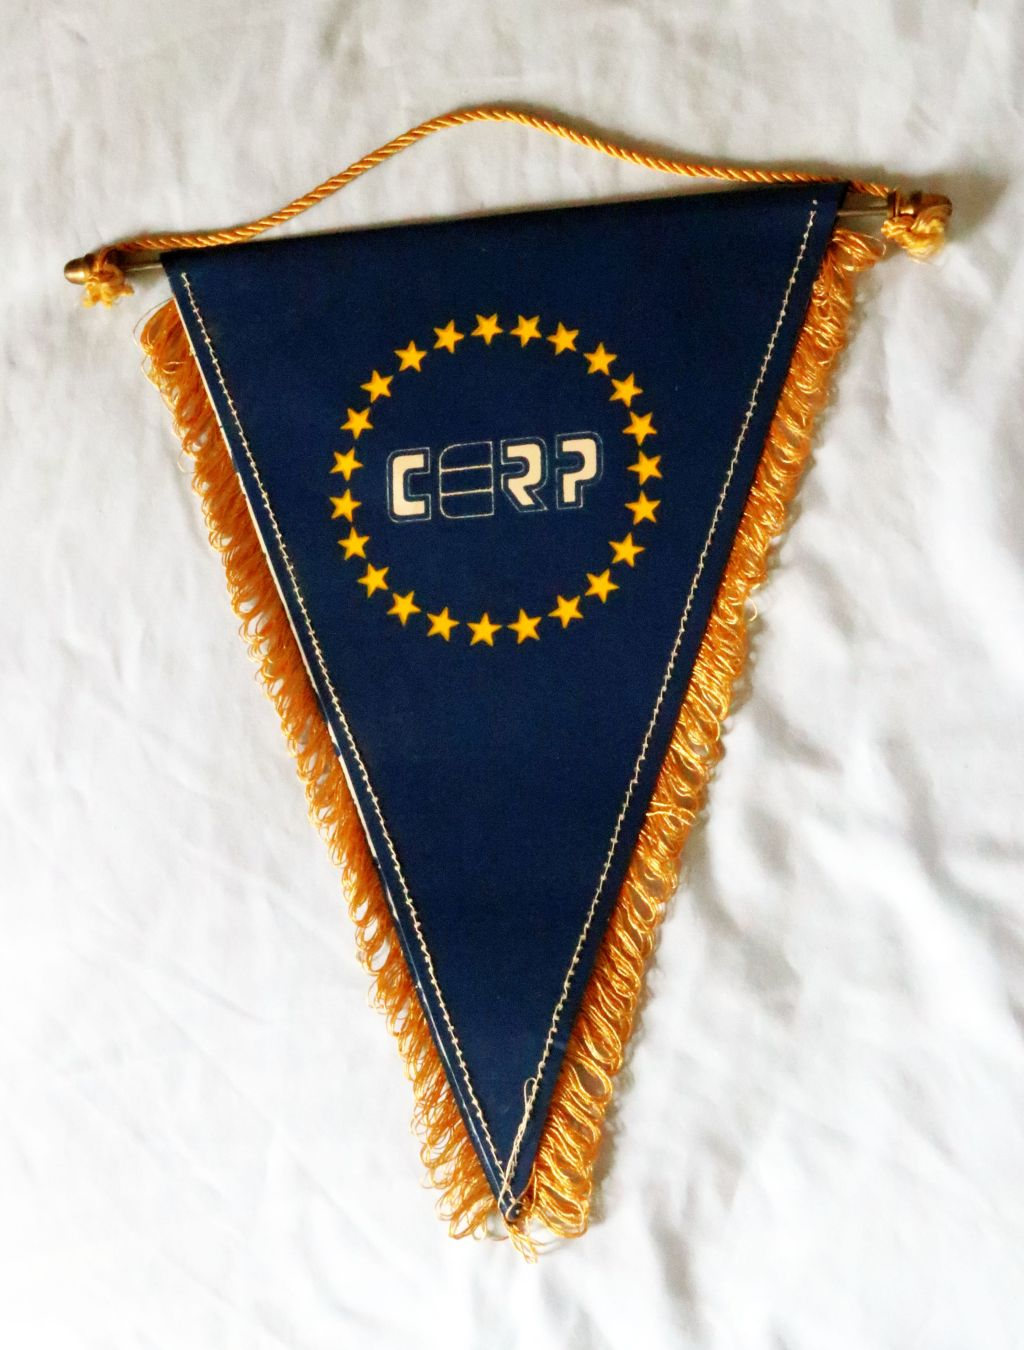 "The Museum received a flag of CERP (The CERP is the ""Confederation des European Relations Publiques"" – the European Public Relations Confederation), which has been used for professional events such as Council or Board Meetings."